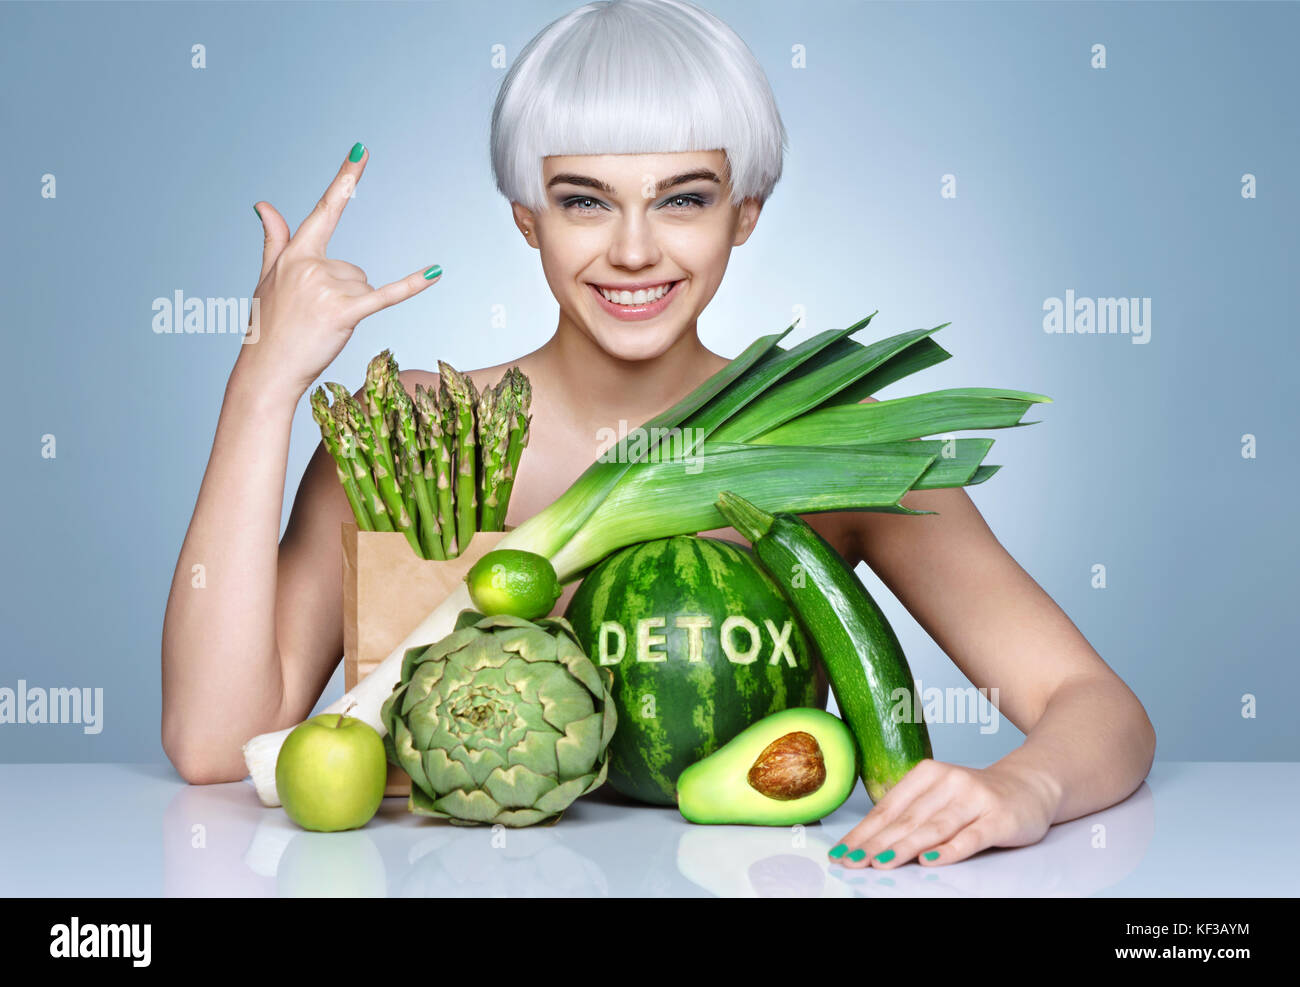 Fashion girl with an abundance of fruits and vegetables. Photo of smiling blonde girl showing gesture 'is cool'. - Stock Image